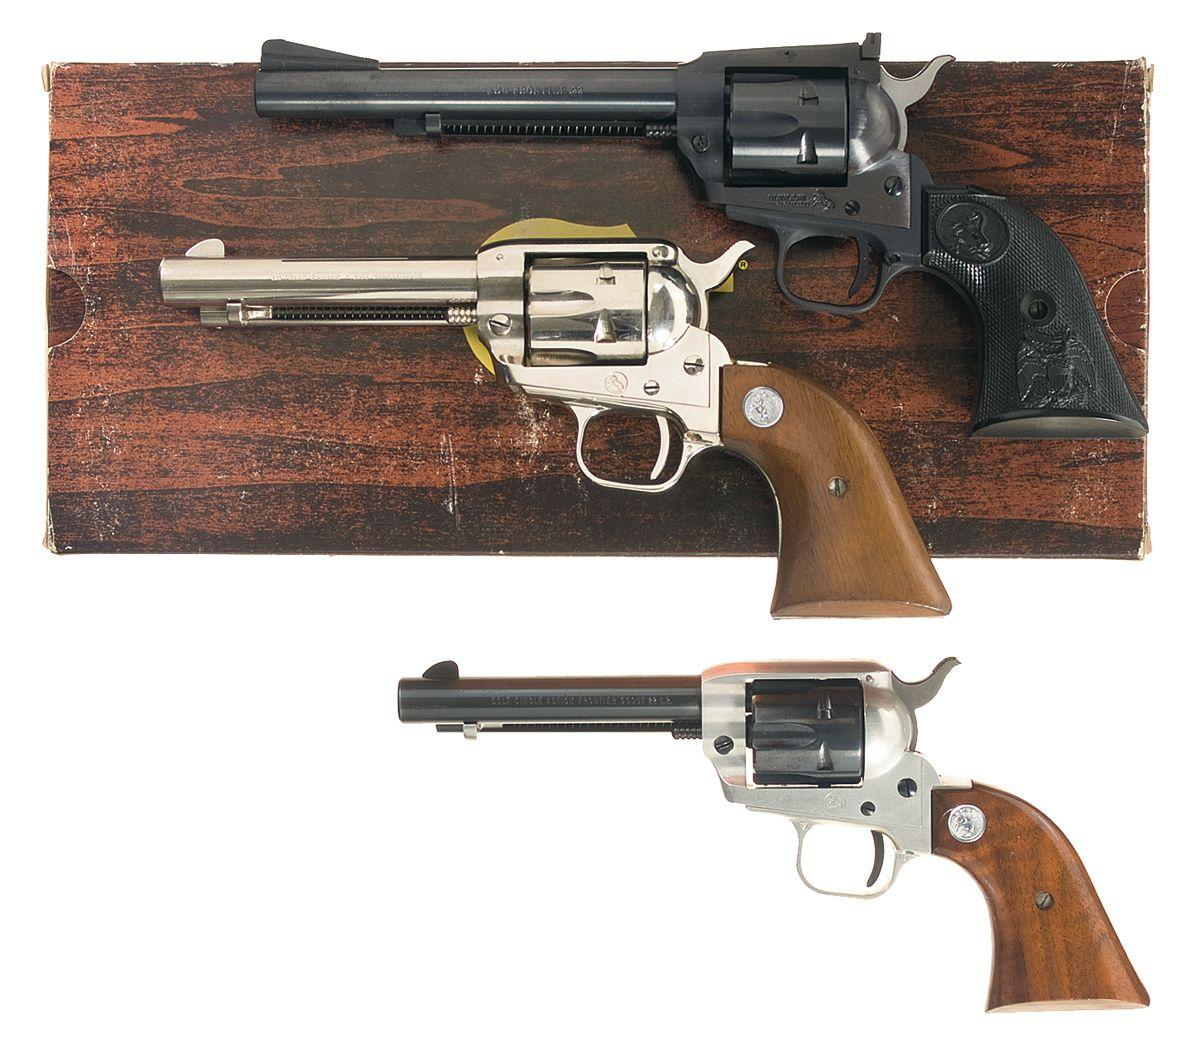 HQ Colt New Frontier Revolver Wallpapers | File 163.53Kb